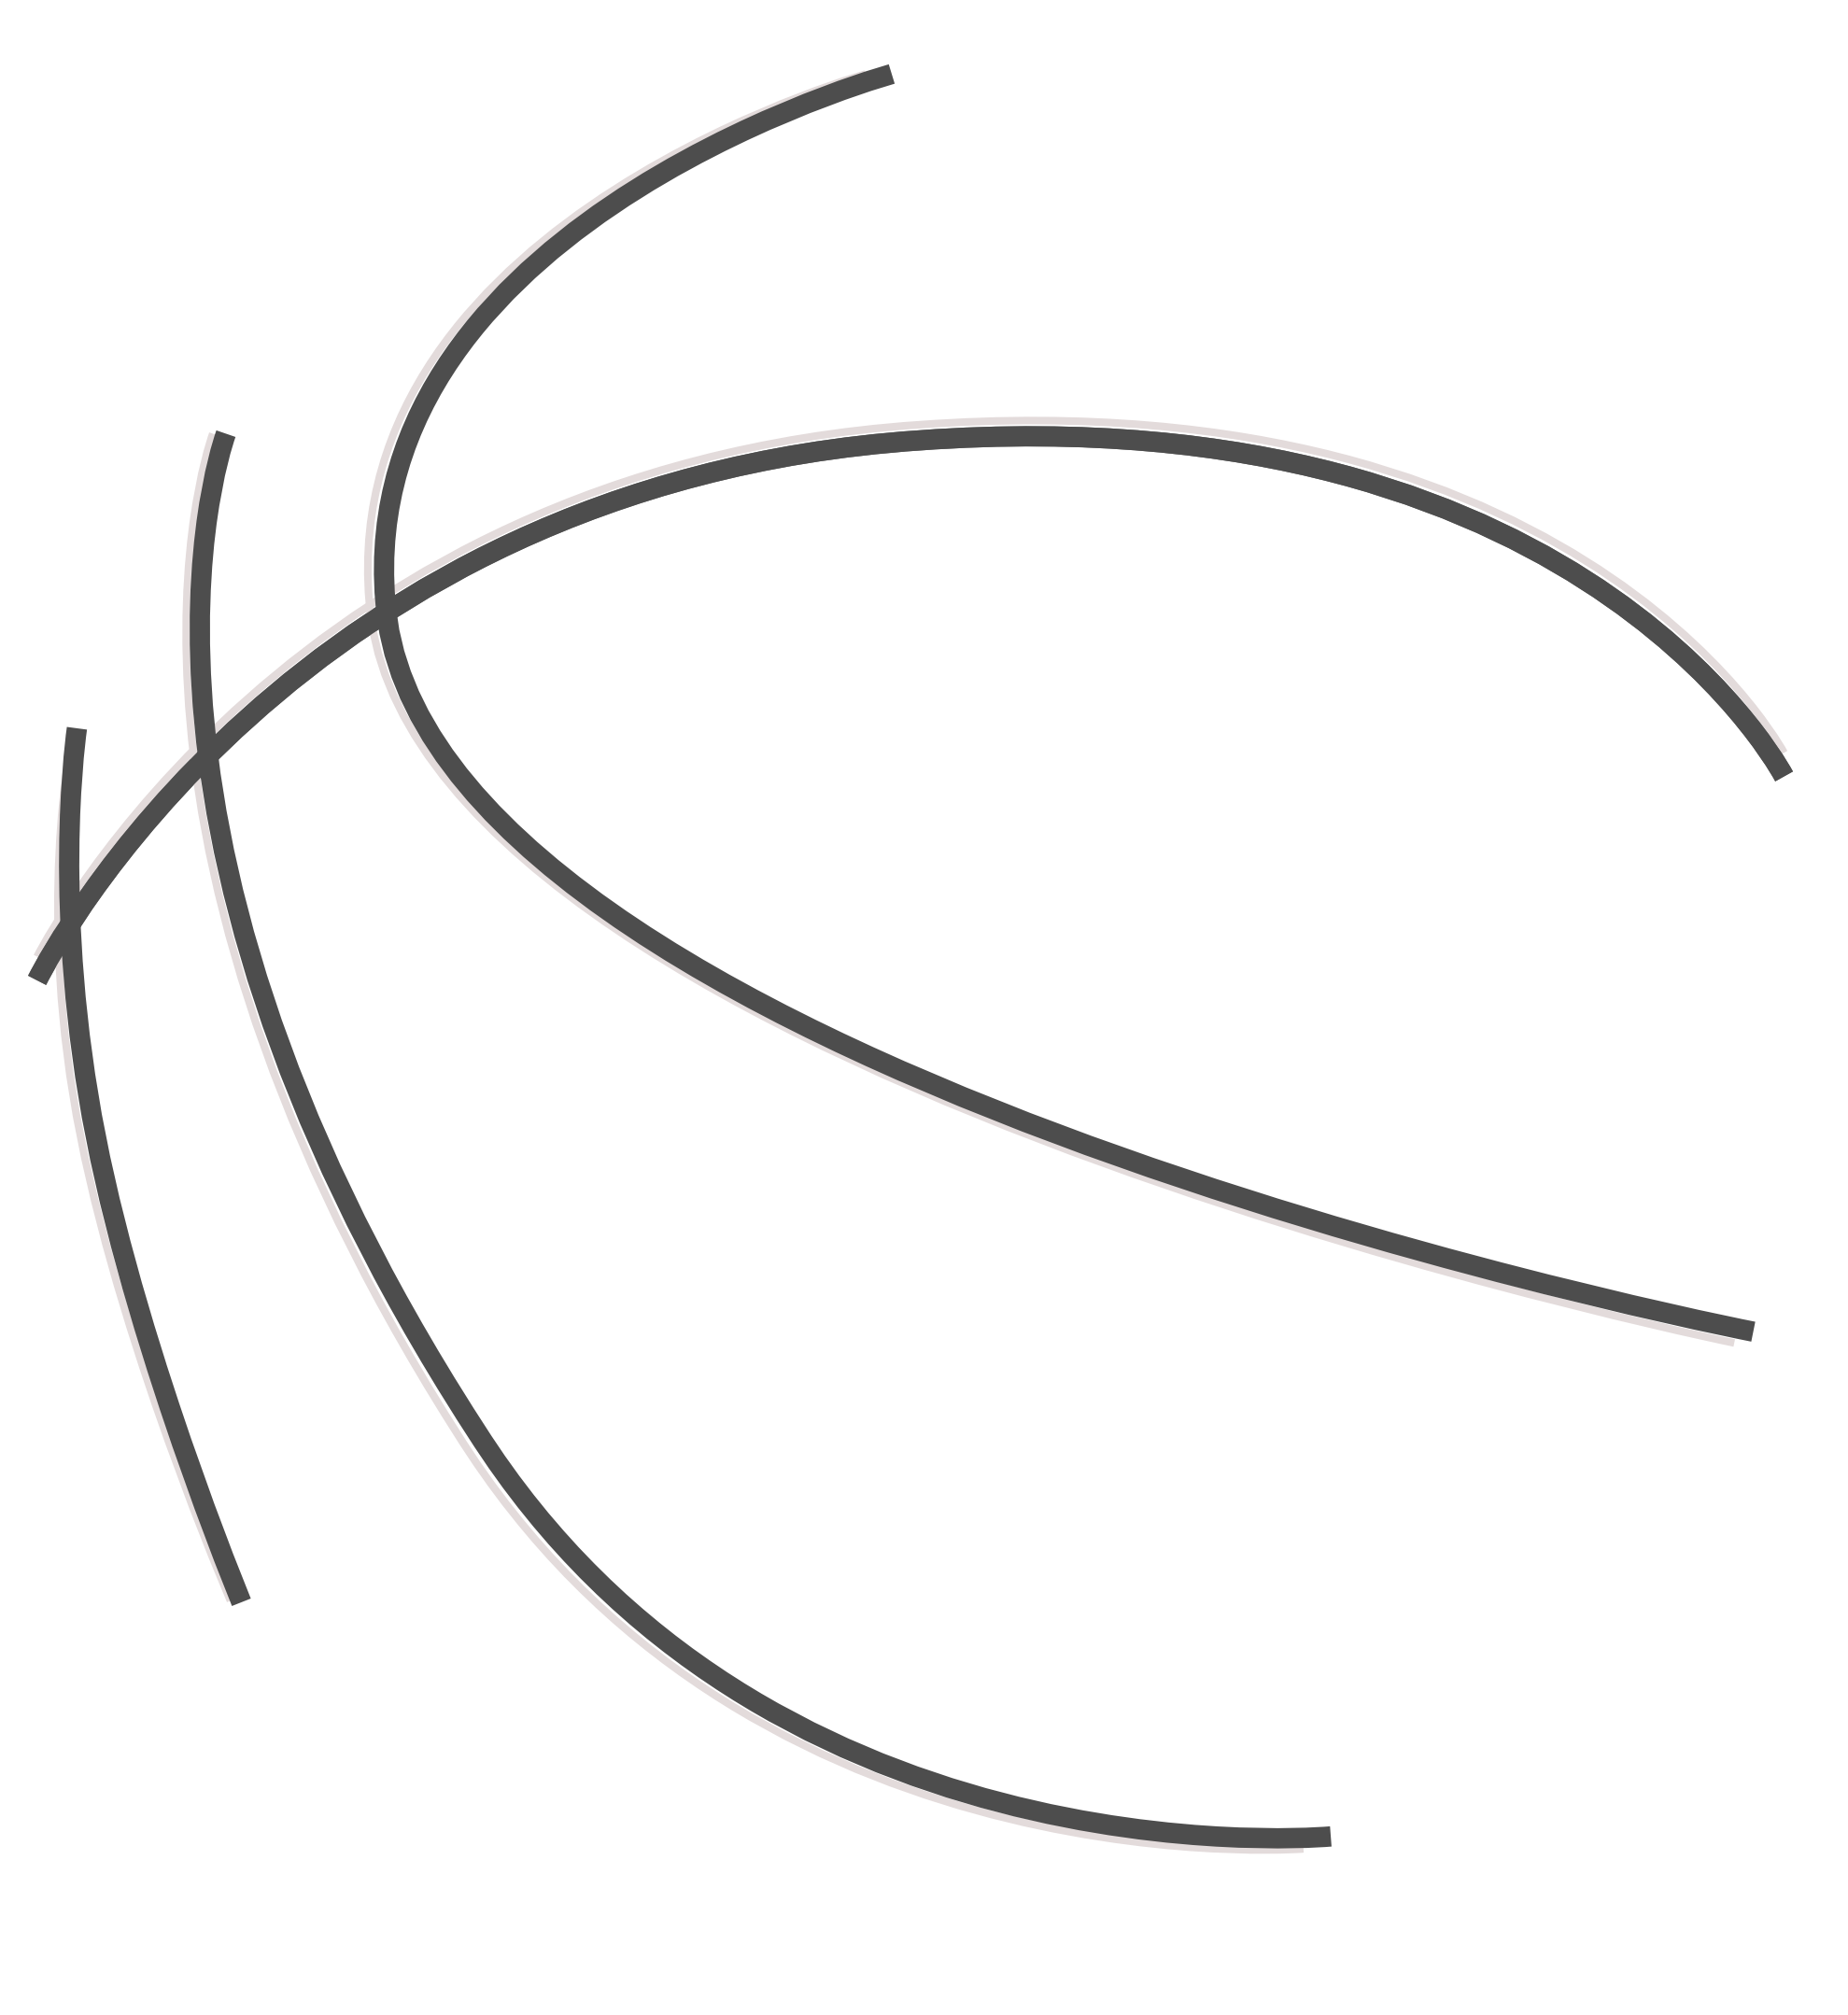 Heartbeat basketball clipart image freeuse stock basketball%20clipart%20black%20and%20white | cricut-it-out ... image freeuse stock